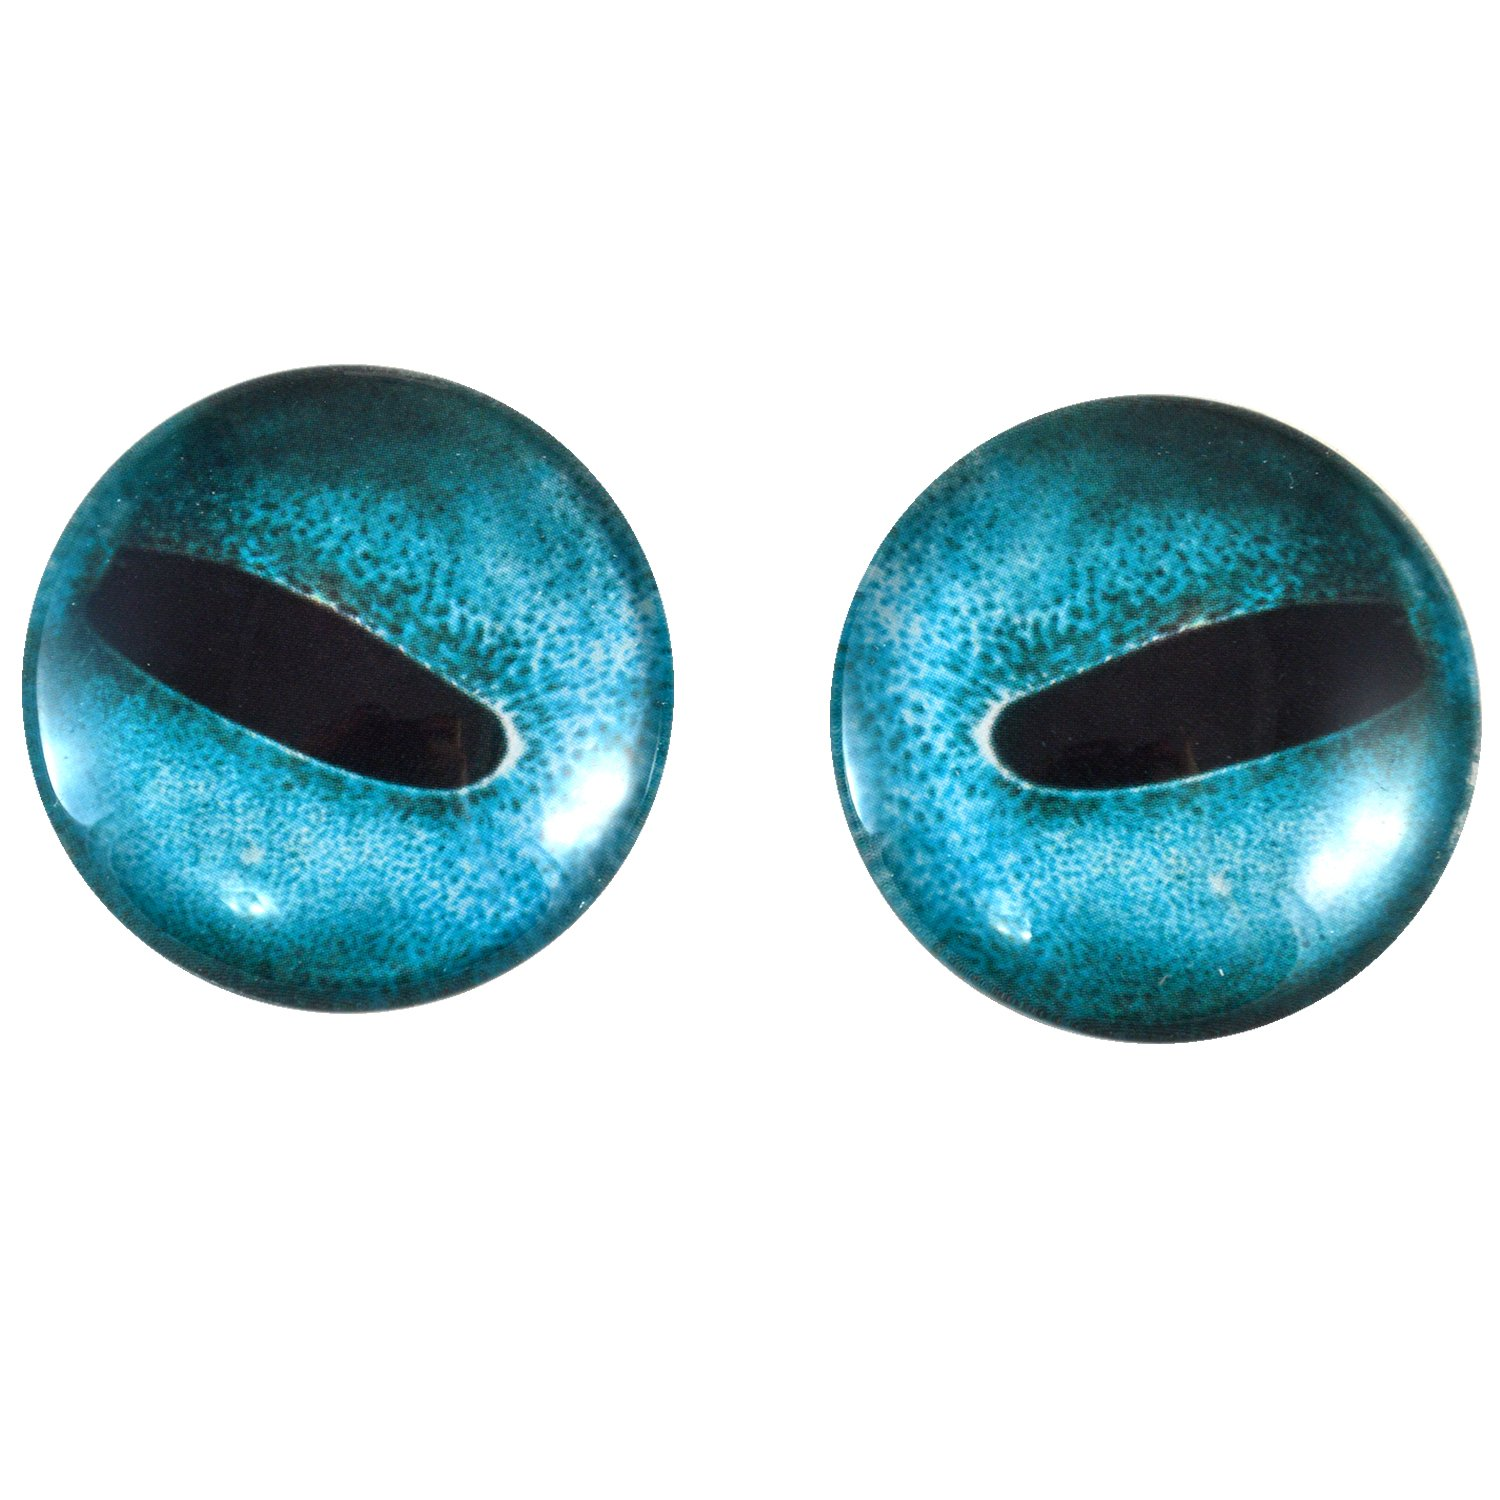 40mm Pair of Large Blue Octopus Glass Eyes, for Jewelry making, Arts Dolls, Sculptures, and More